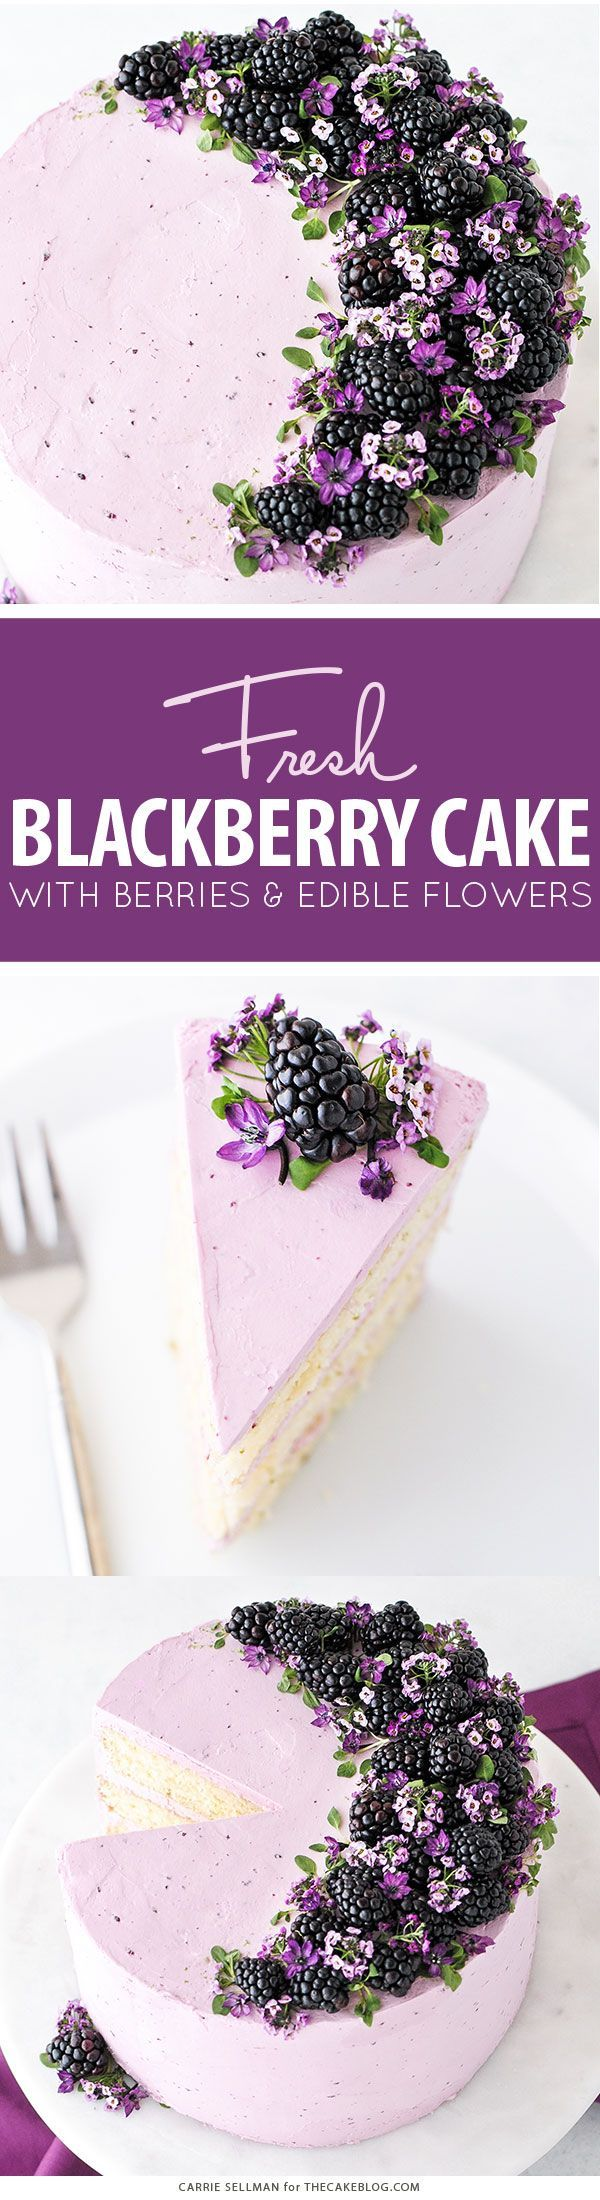 Blackberry Lime Cake - tender cake infused with lime zest, frosted with blackberry buttercream, topped withfresh blackberries and edible flowers   by Carrie Sellman for TheCakeBlog.com